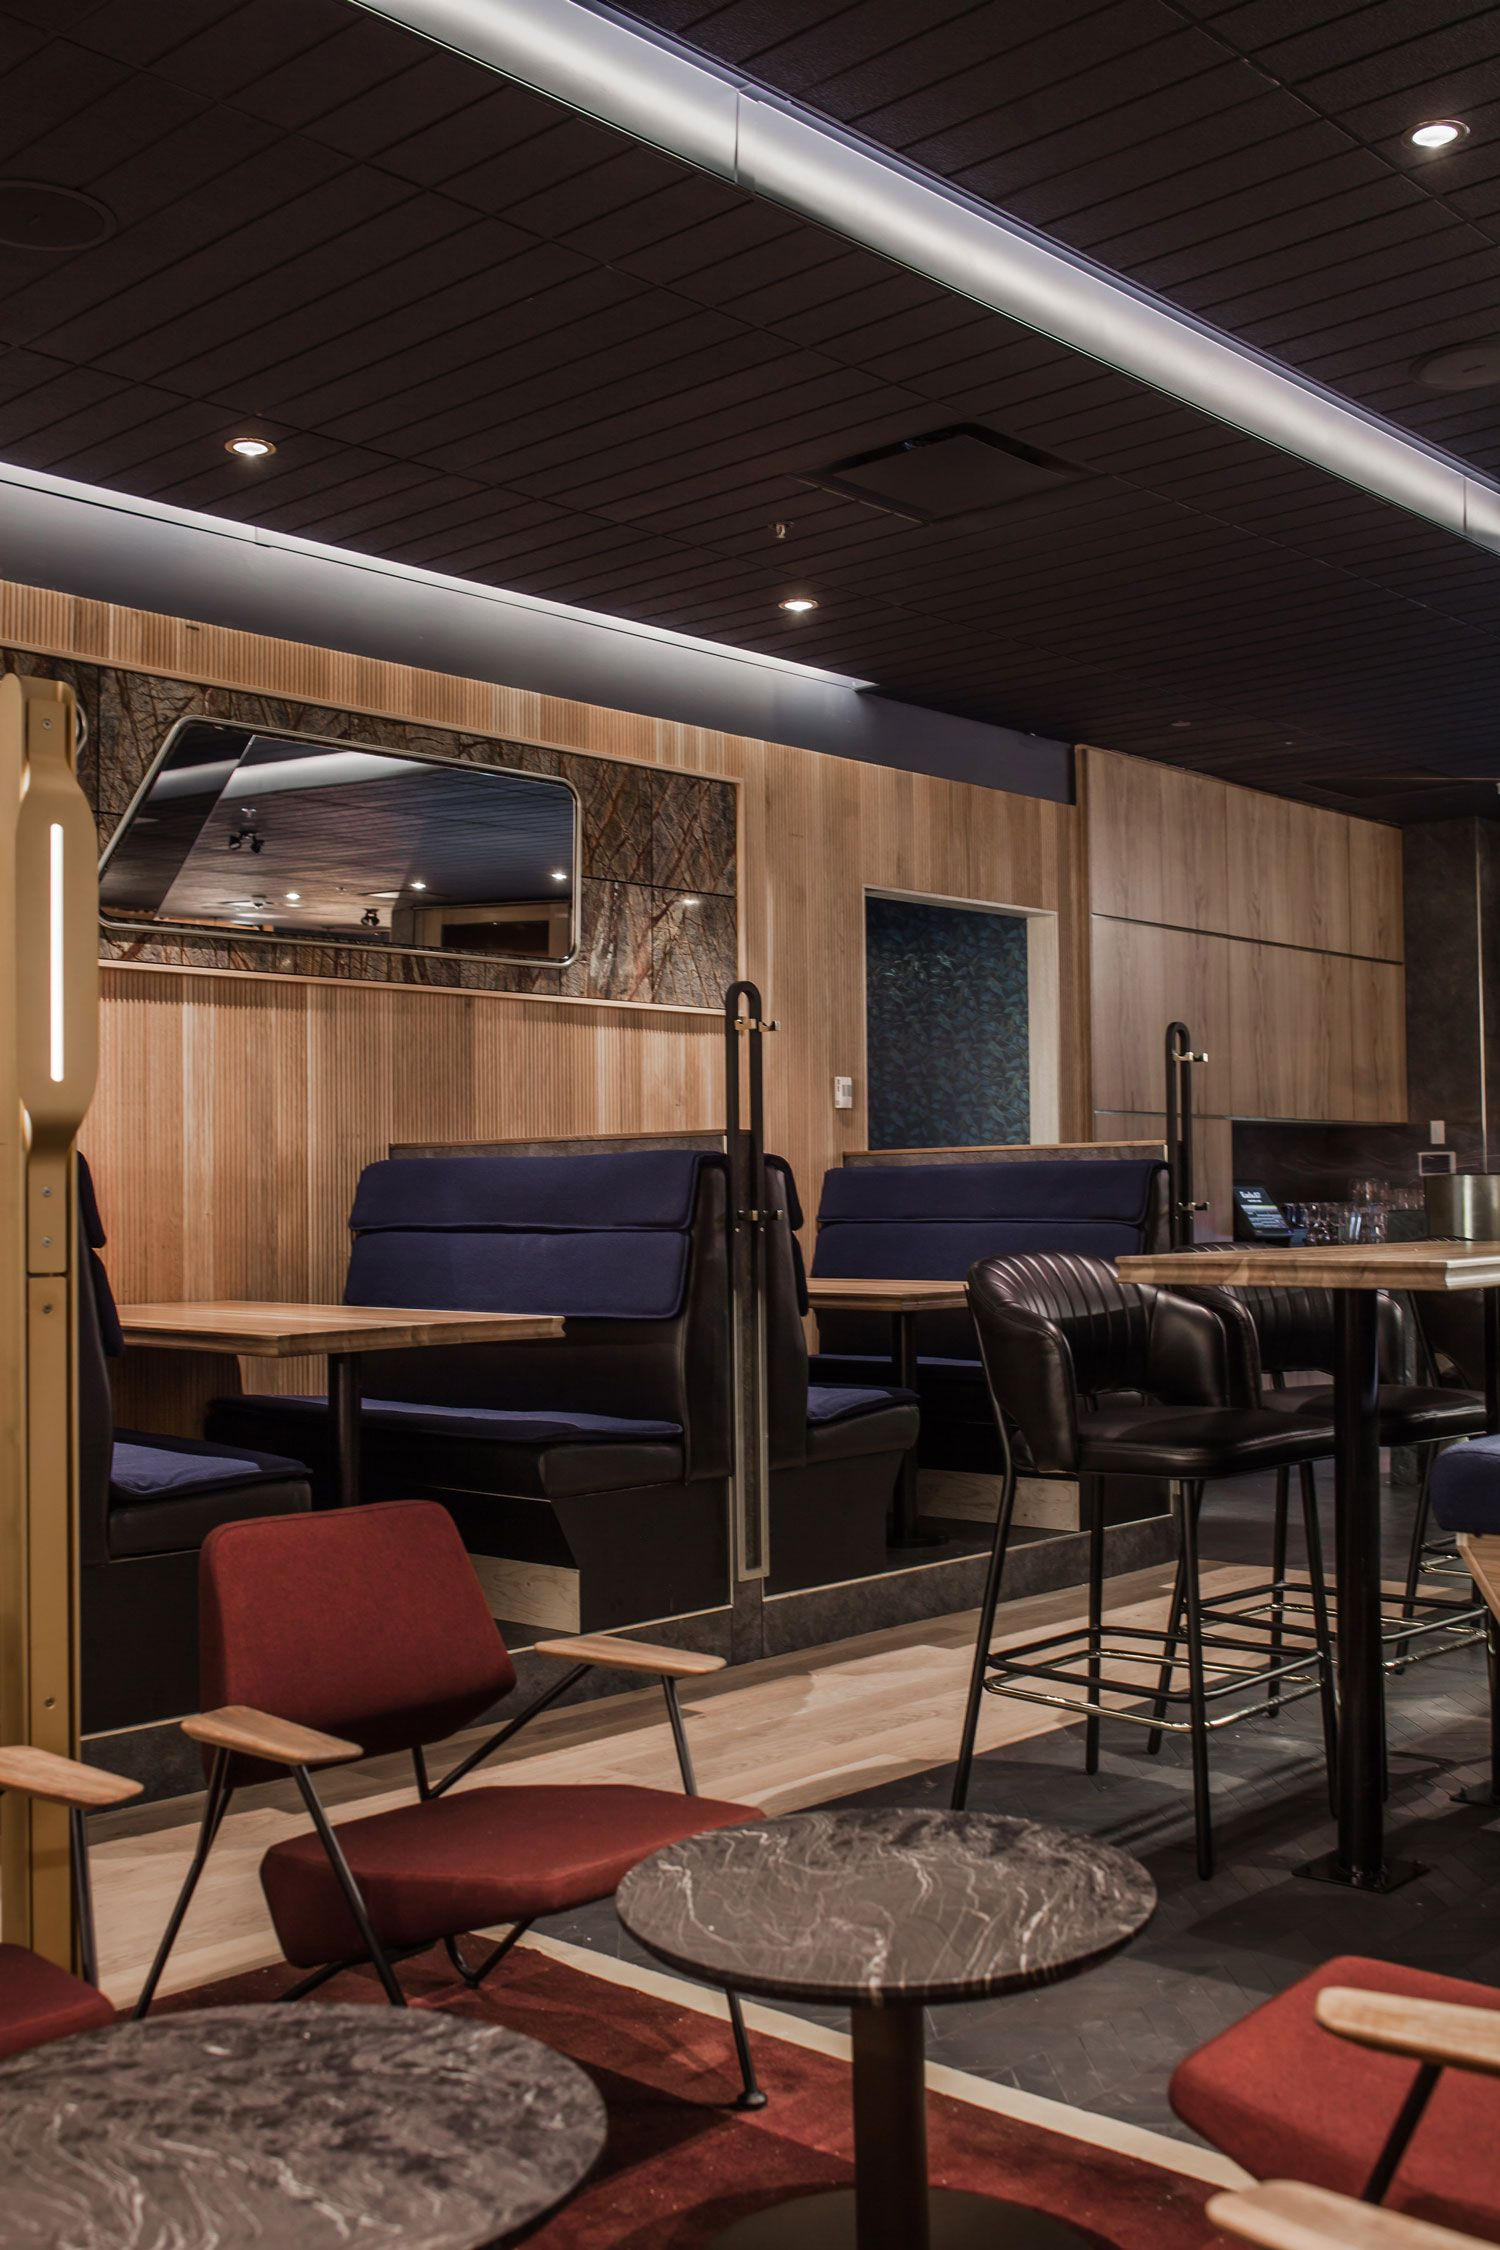 Earls 67 Concept Restaurant in Calgary by Ste Marie